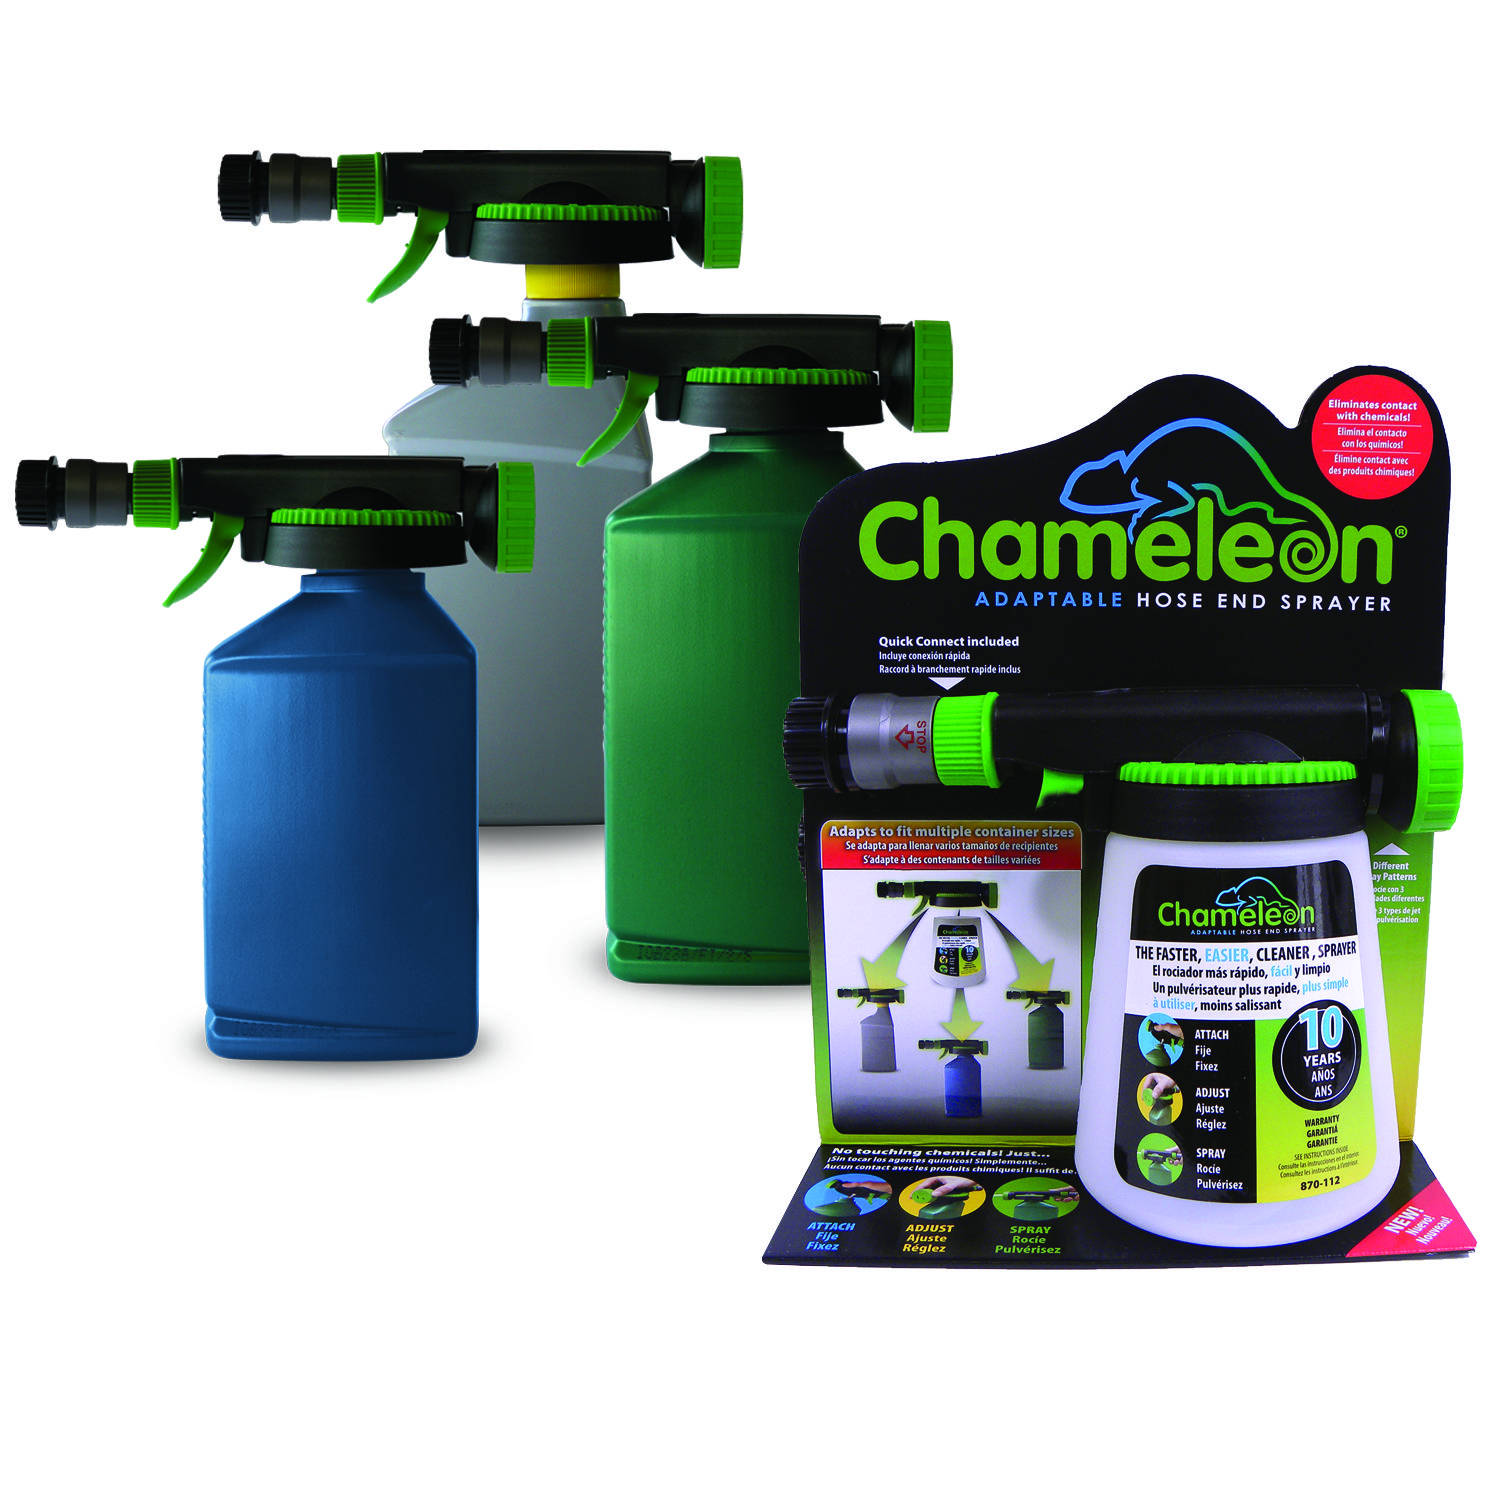 chameleon hose end sprayer instructions